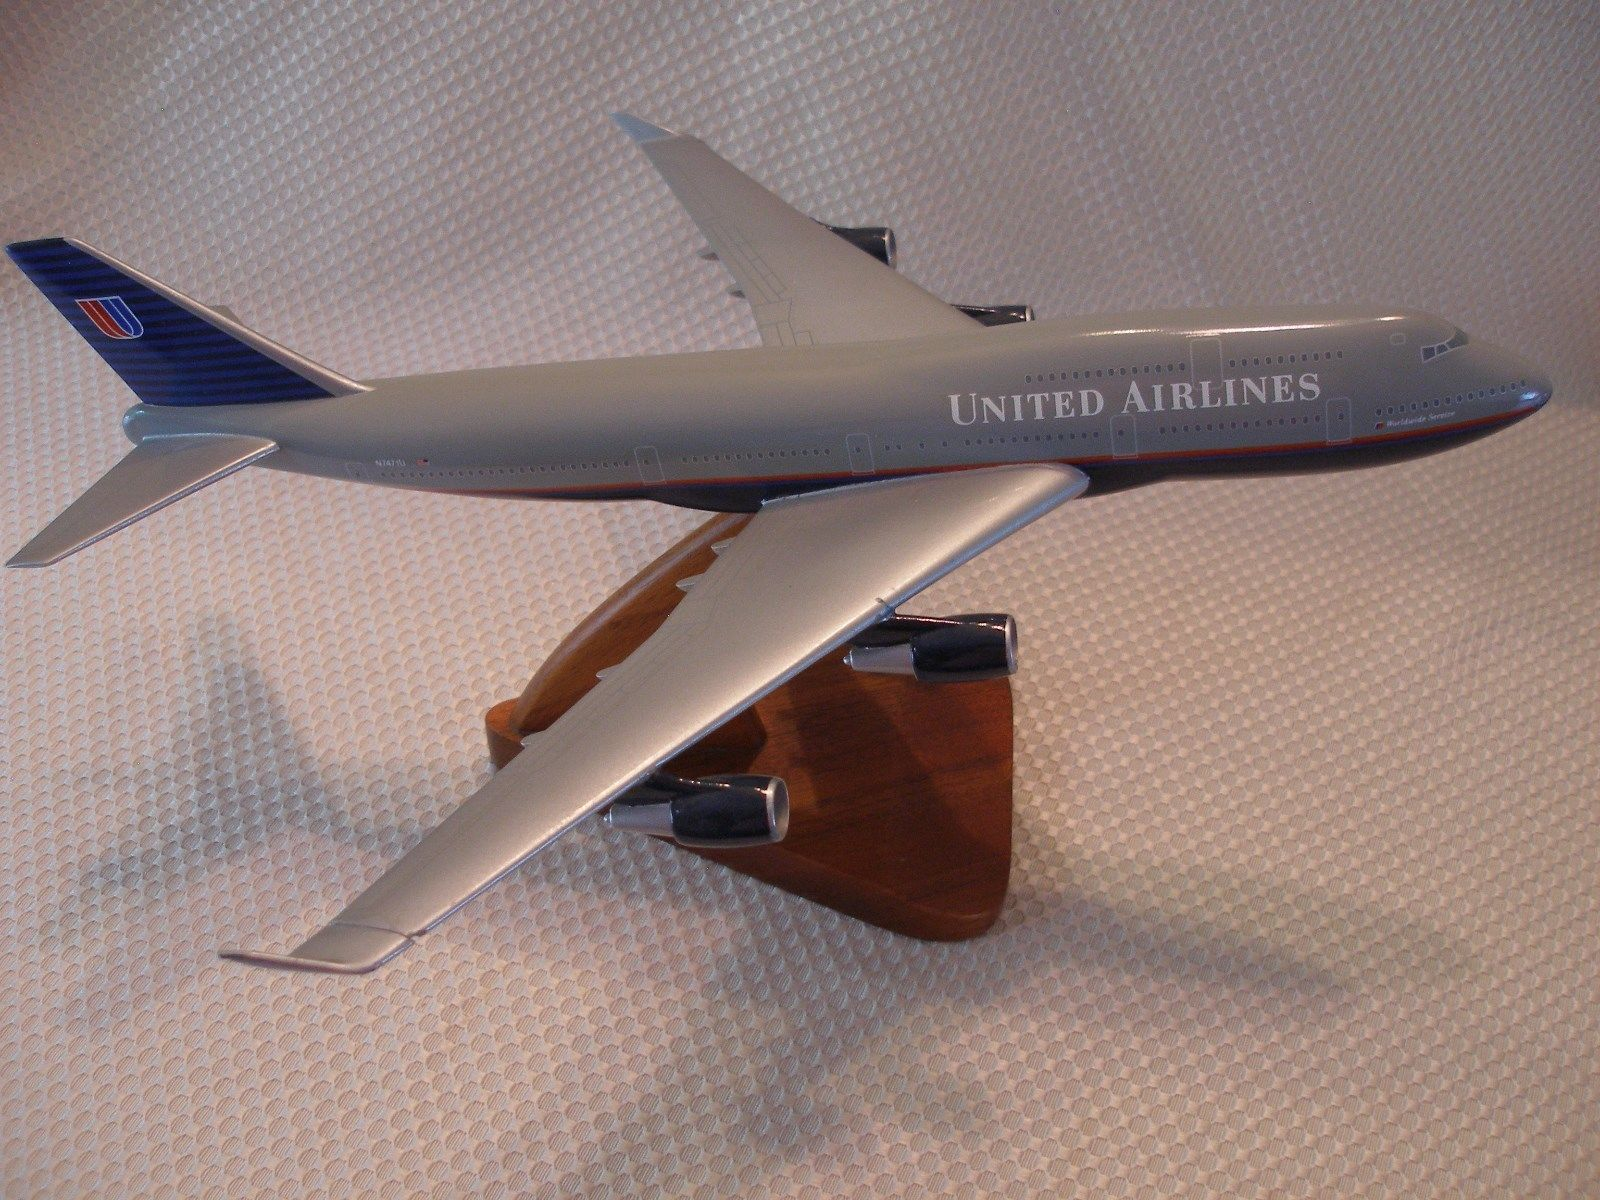 United Airlines 747 Desktop Model